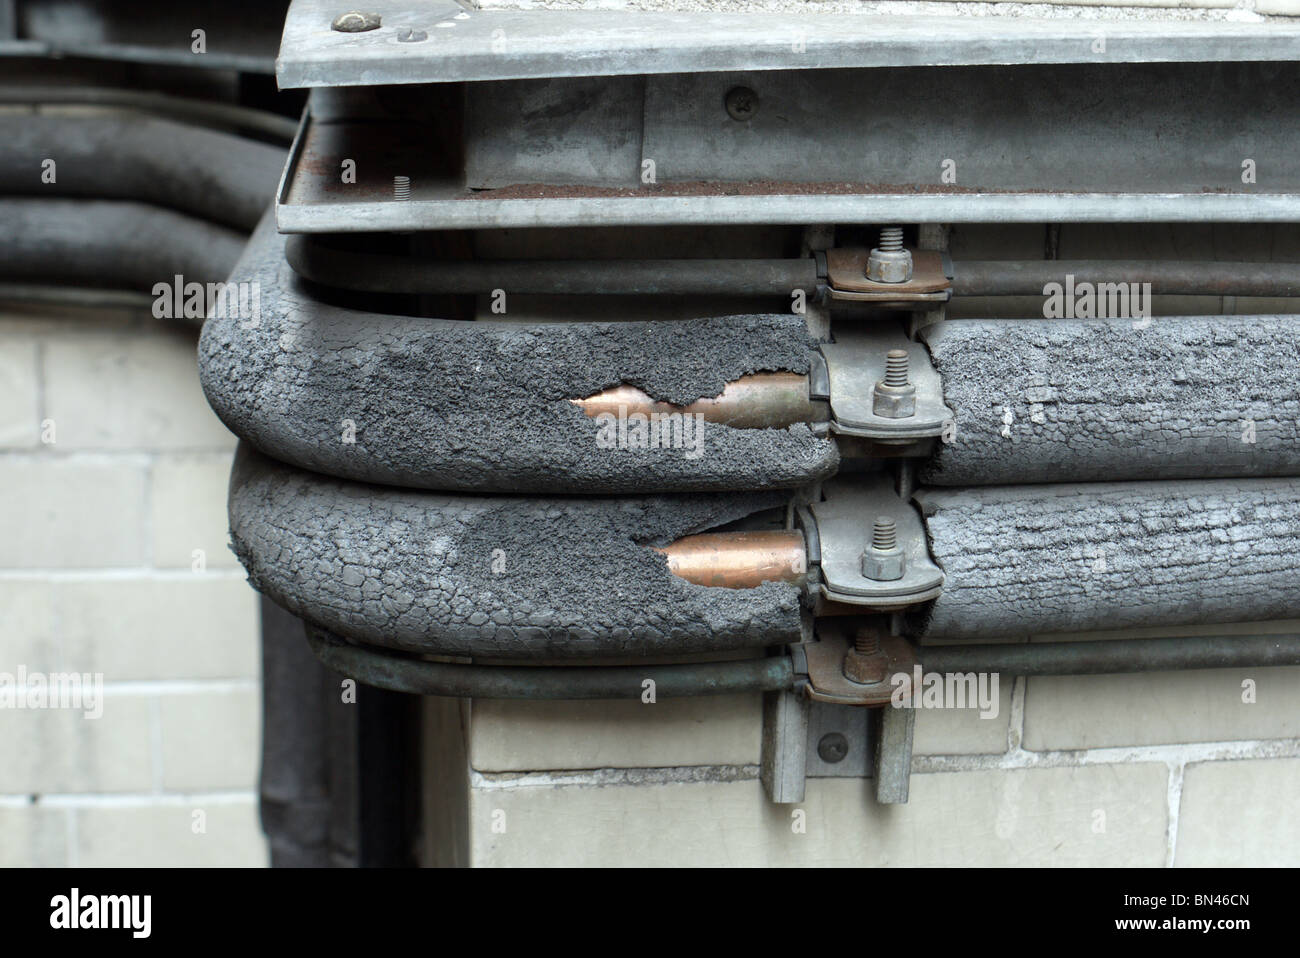 corroding pipe insulation in london england uk - Stock Image